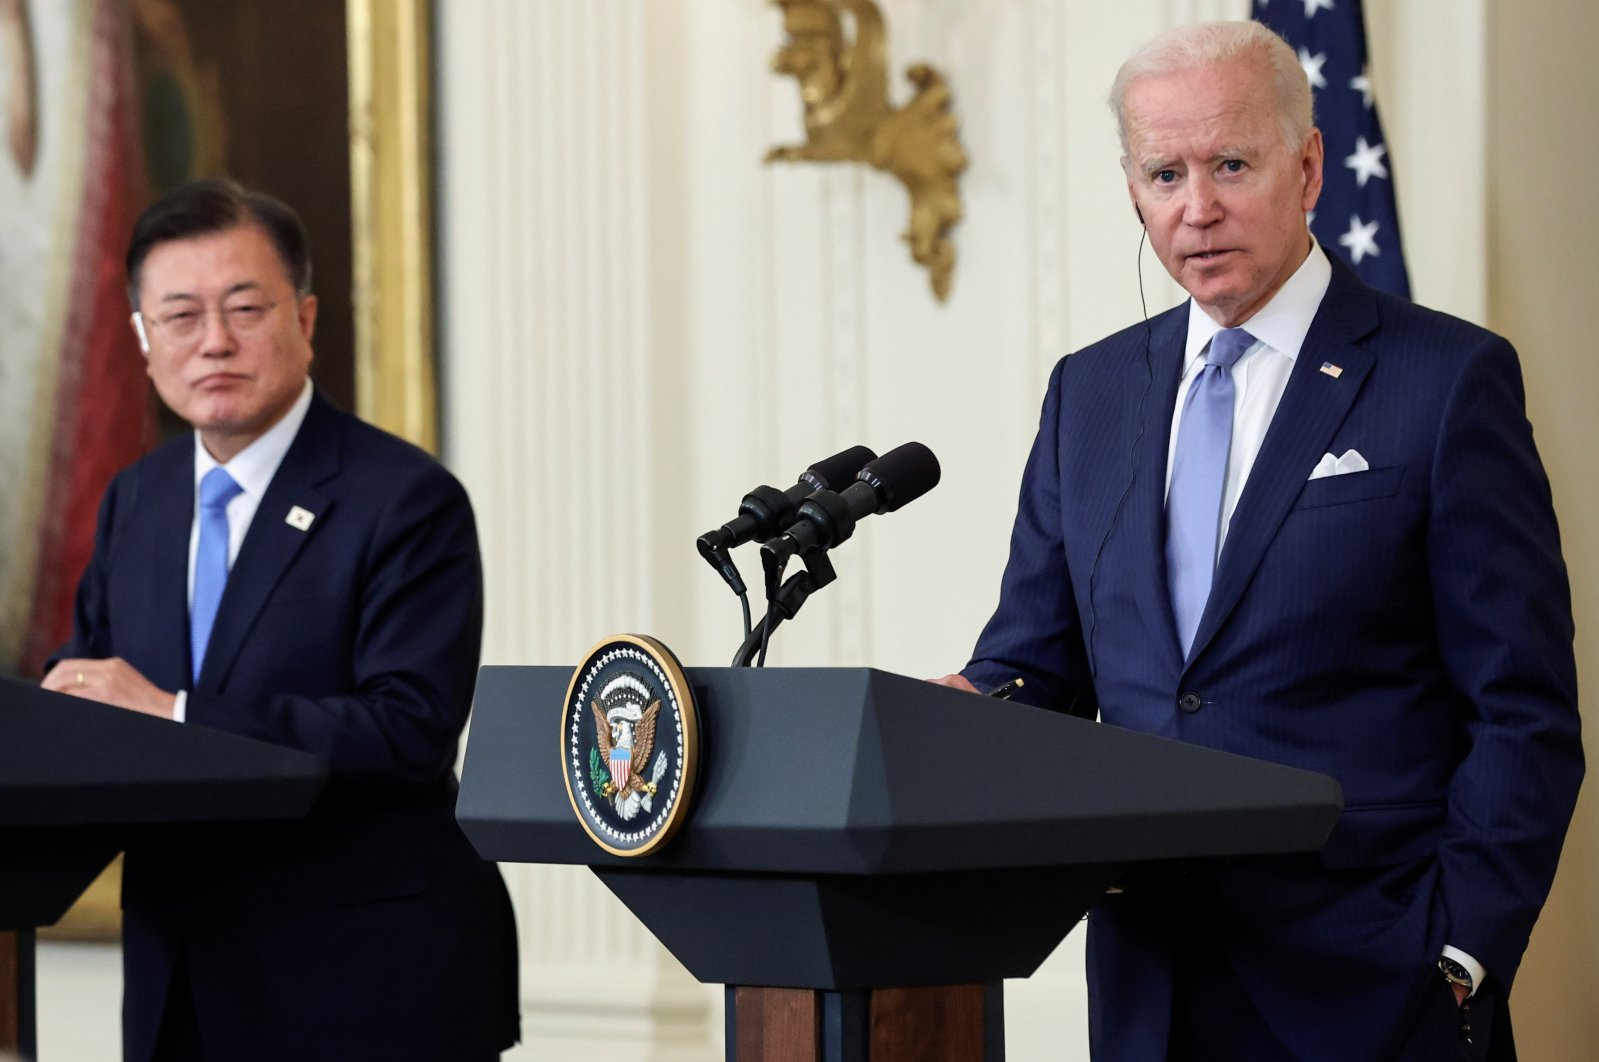 South Korean President Moon Jae-in (L) listens while U.S. President Joe Biden engages a reporter during a joint news conference after a day of meetings at the White House, in Washington, D.C., U.S., May 21, 2021. (REUTERS)